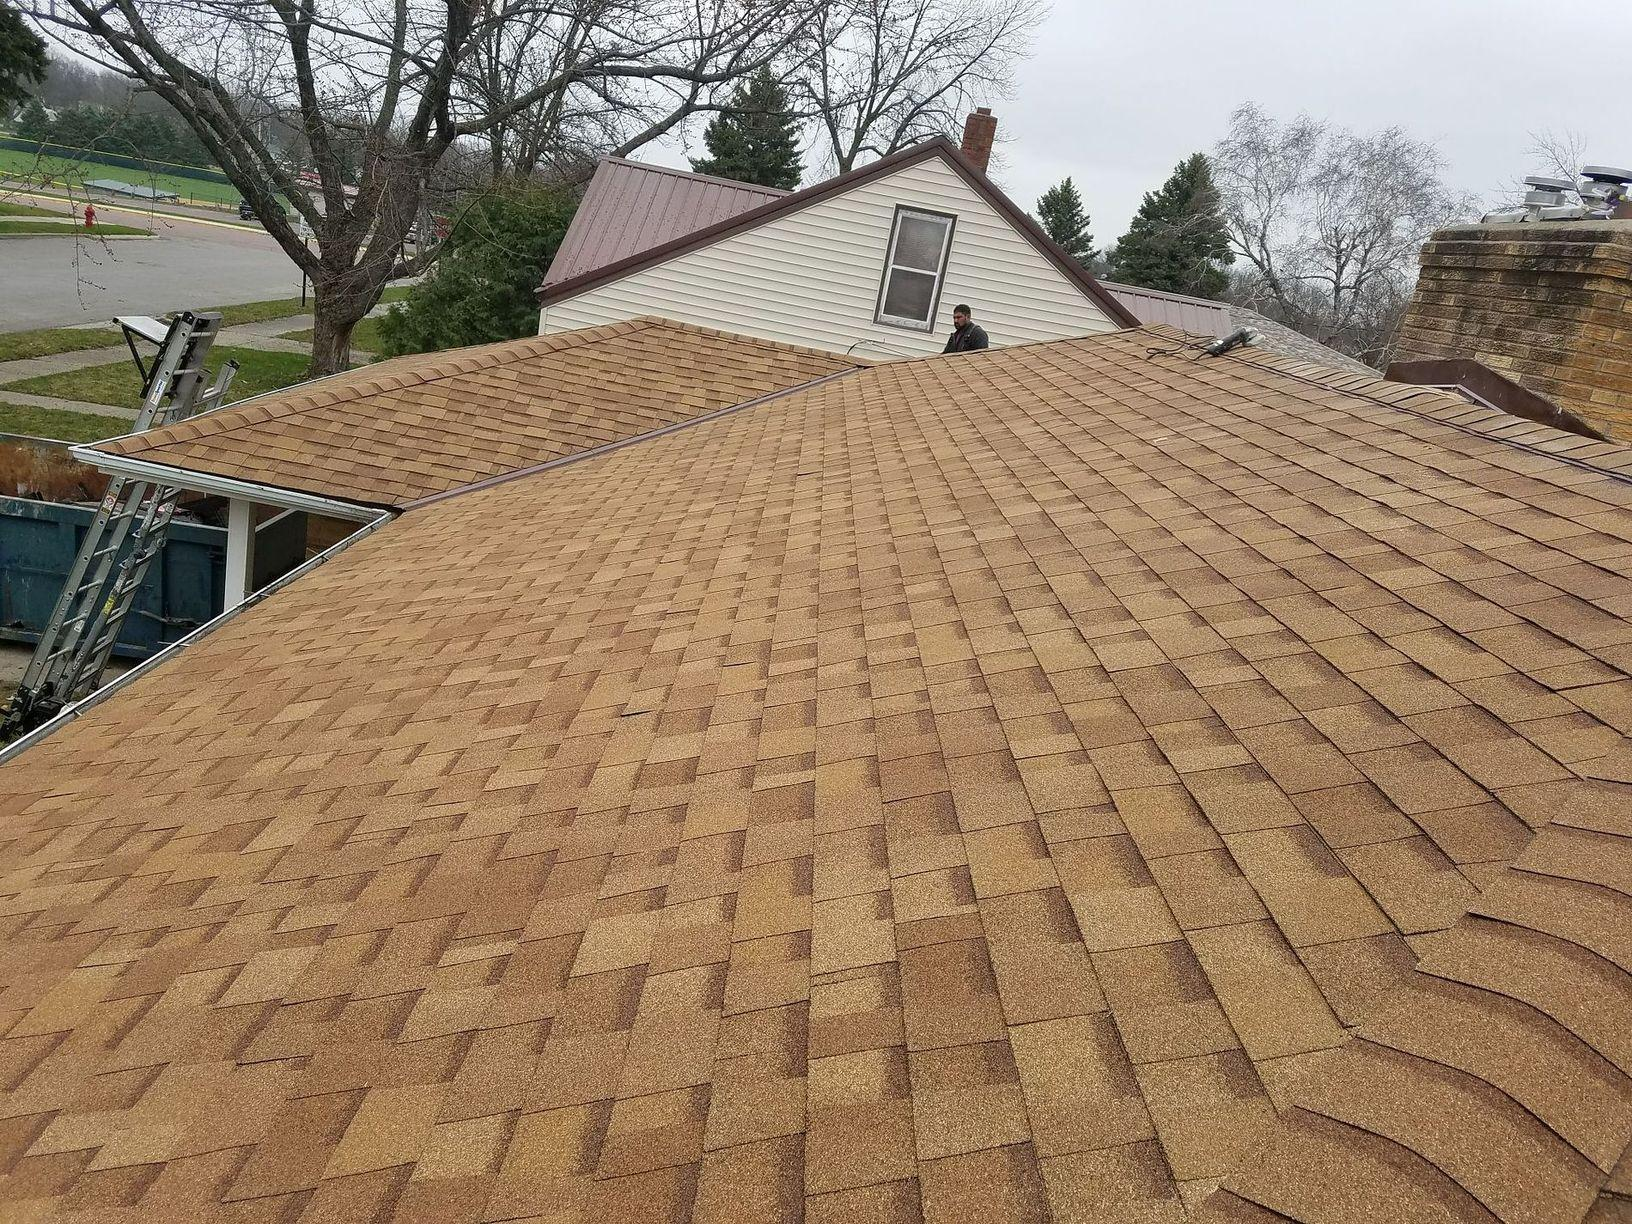 New Owens Corning Roof Installed - After Photo